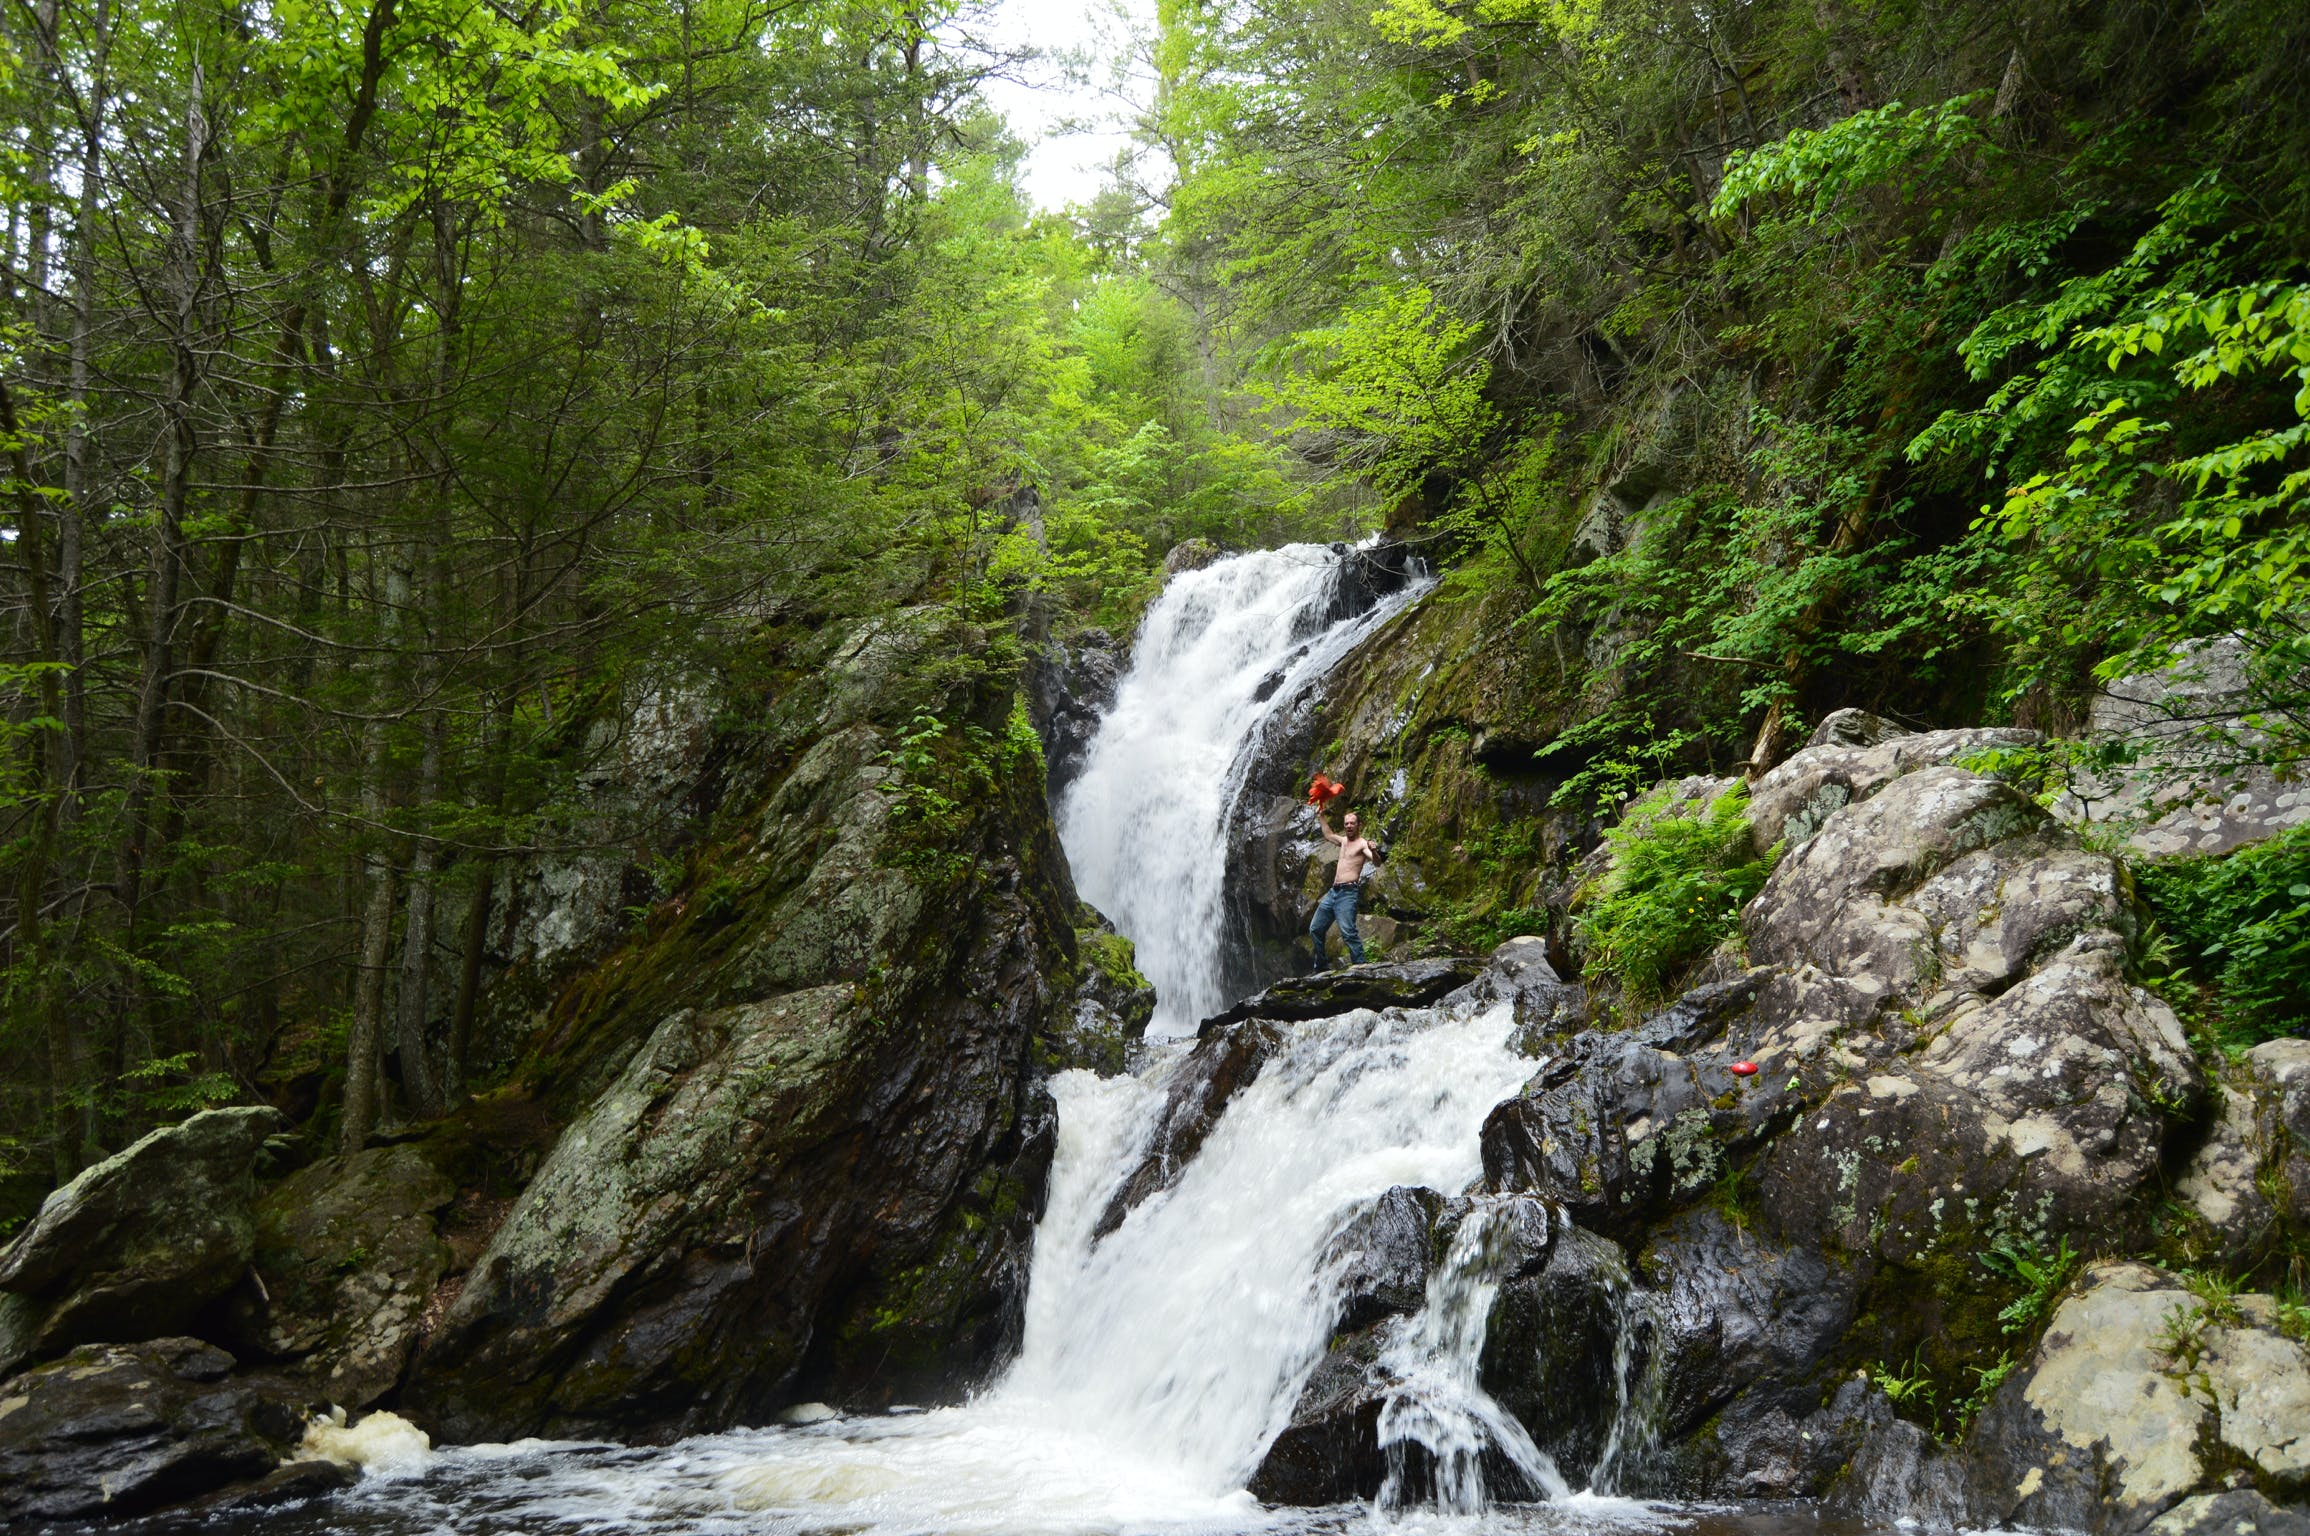 People hike along rocks on the side of a waterfall in the forest.